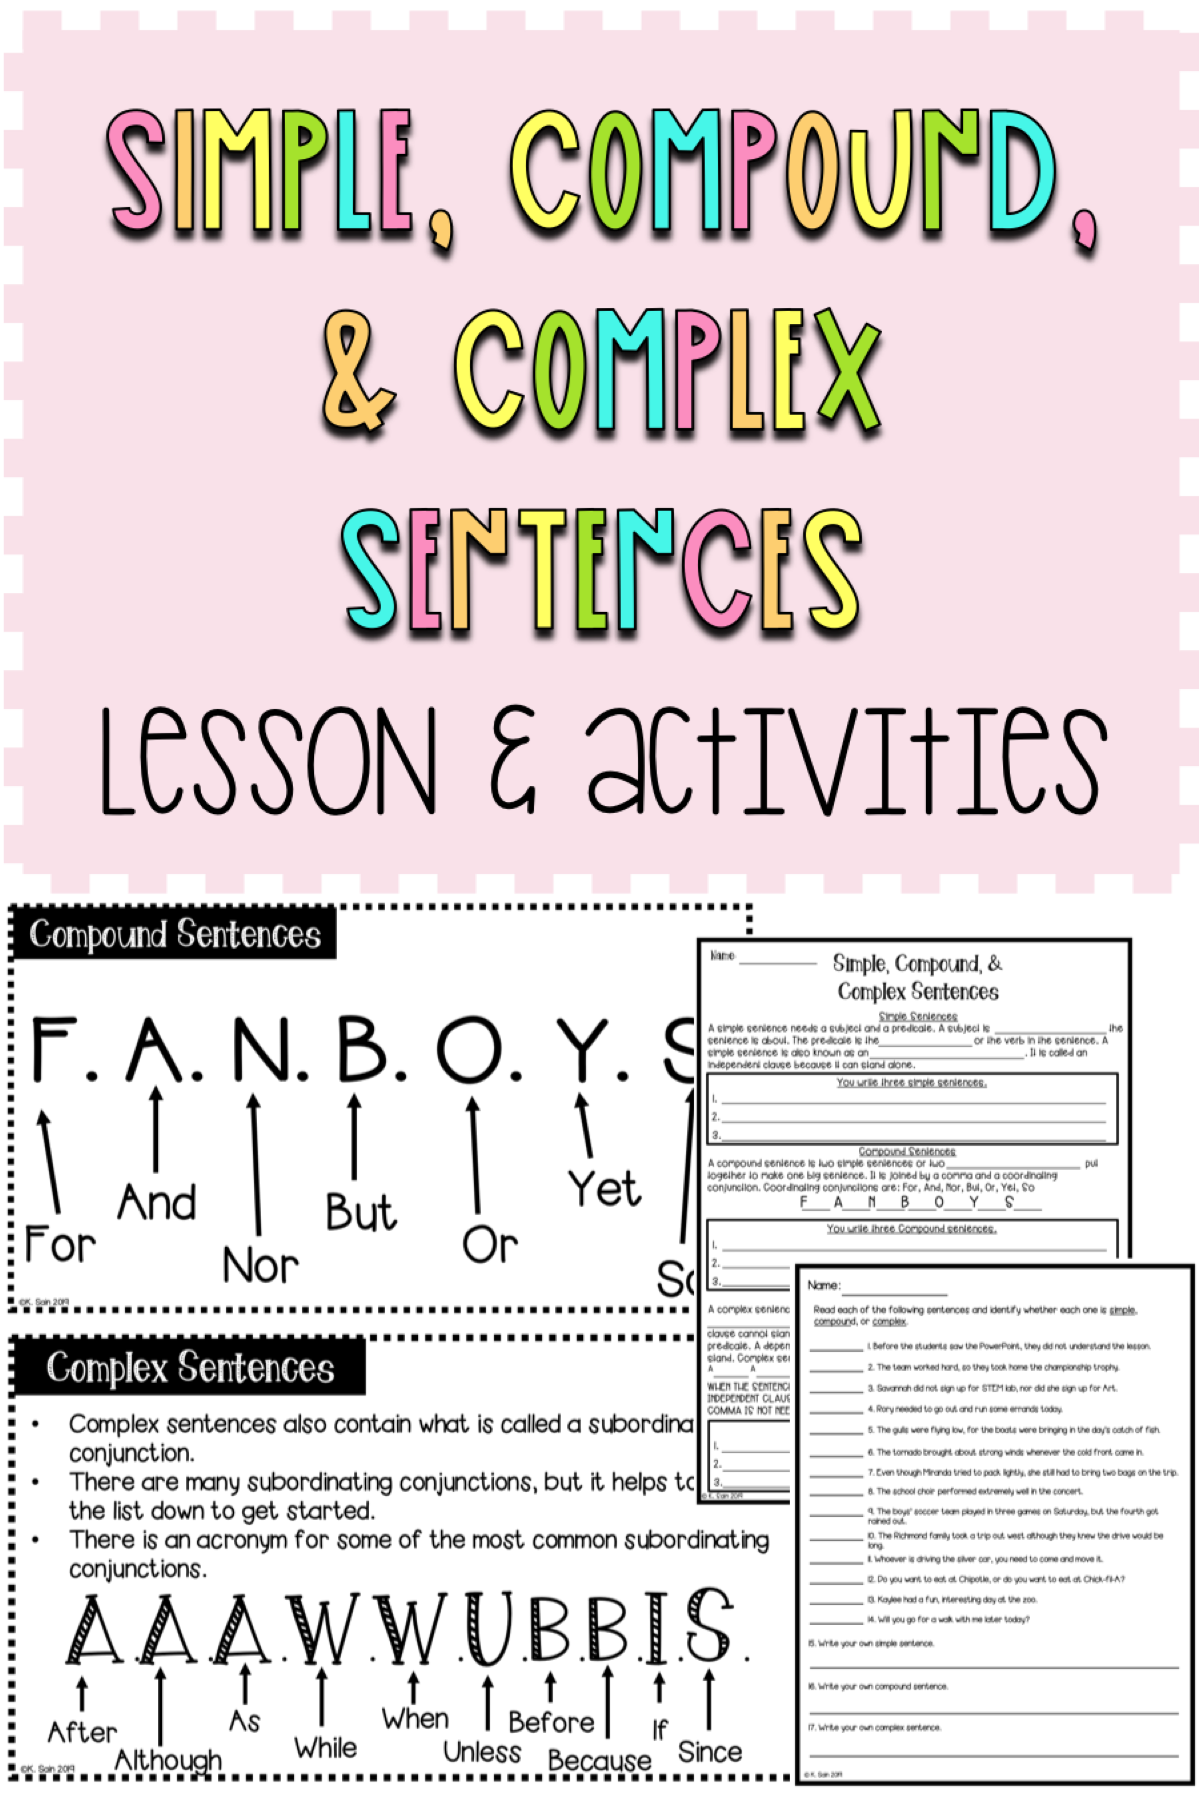 Simple Compound And Complex Sentence Lesson Amp Activities